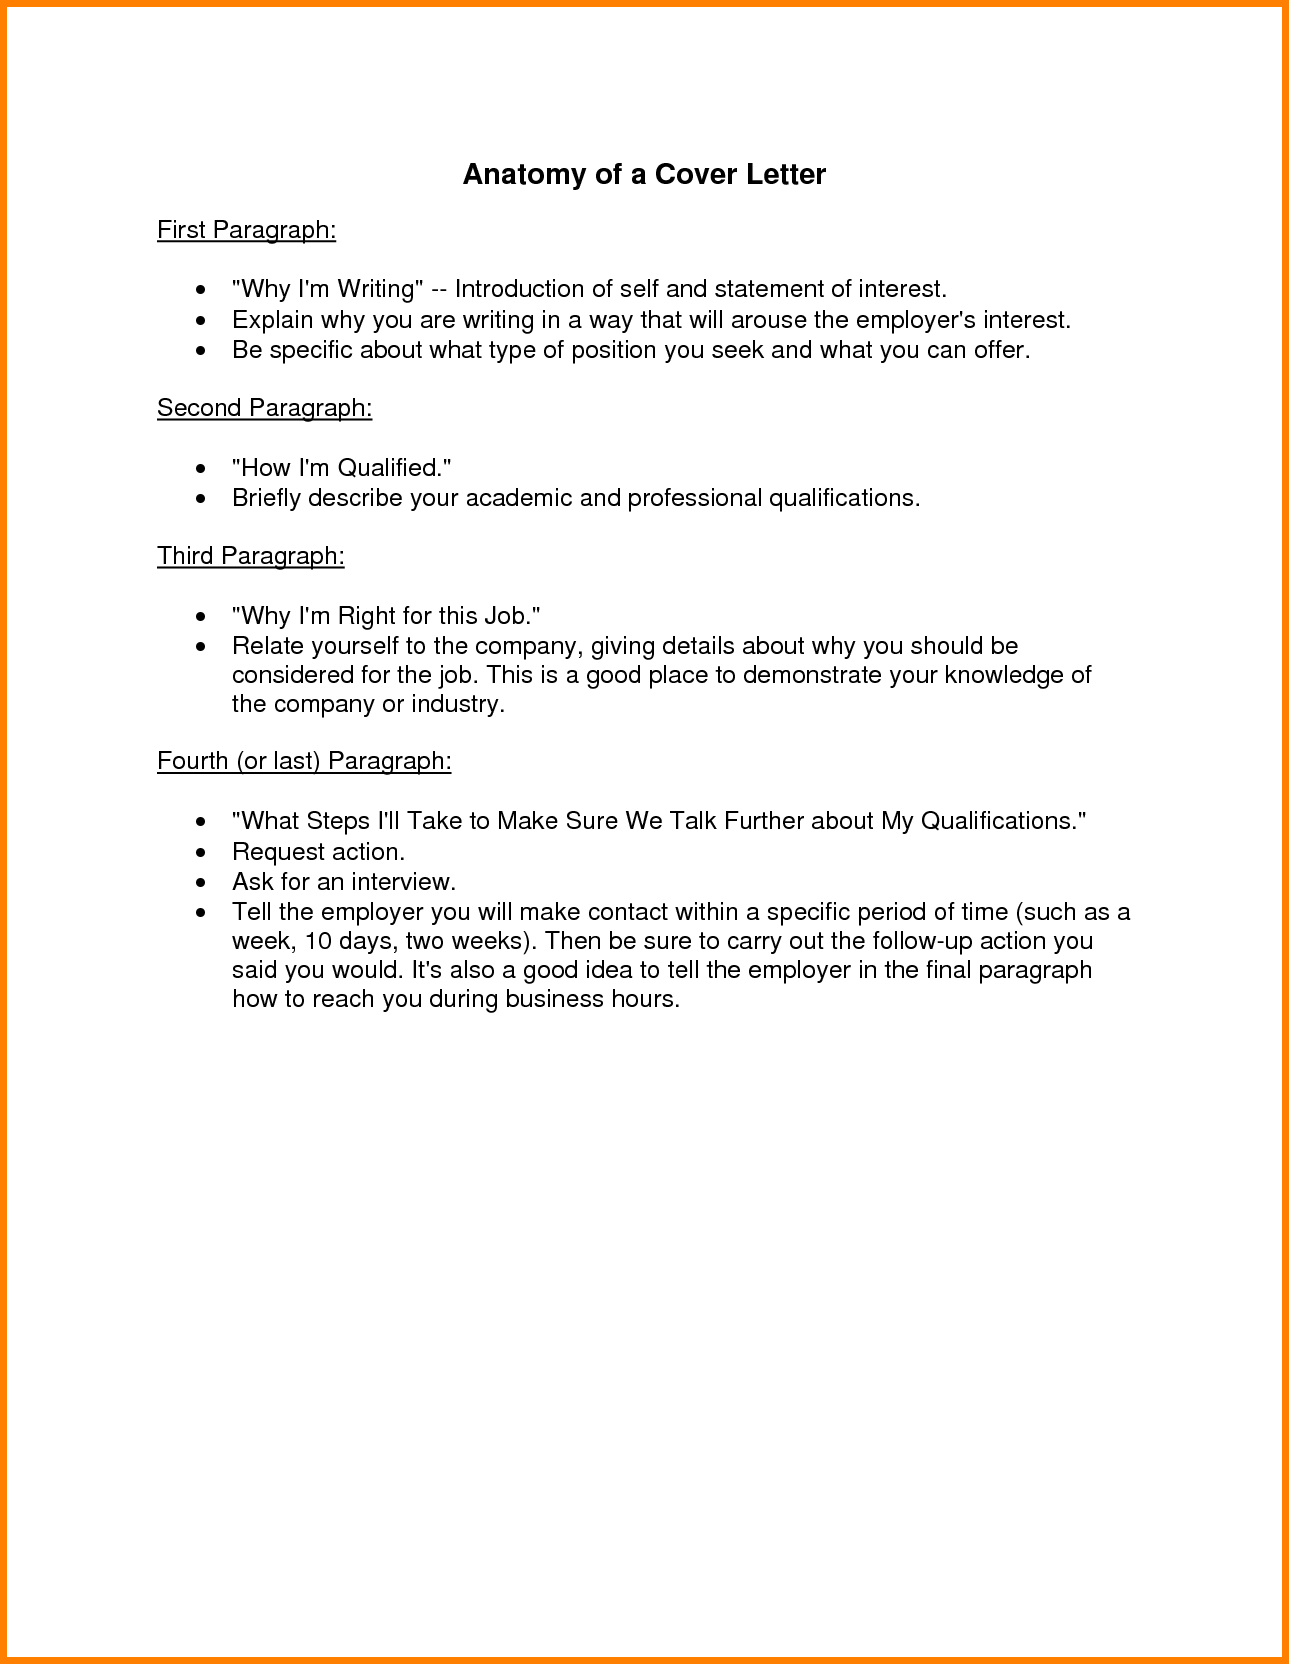 Auto Title Clerk Cover Letter Service Sample  Home Design Idea